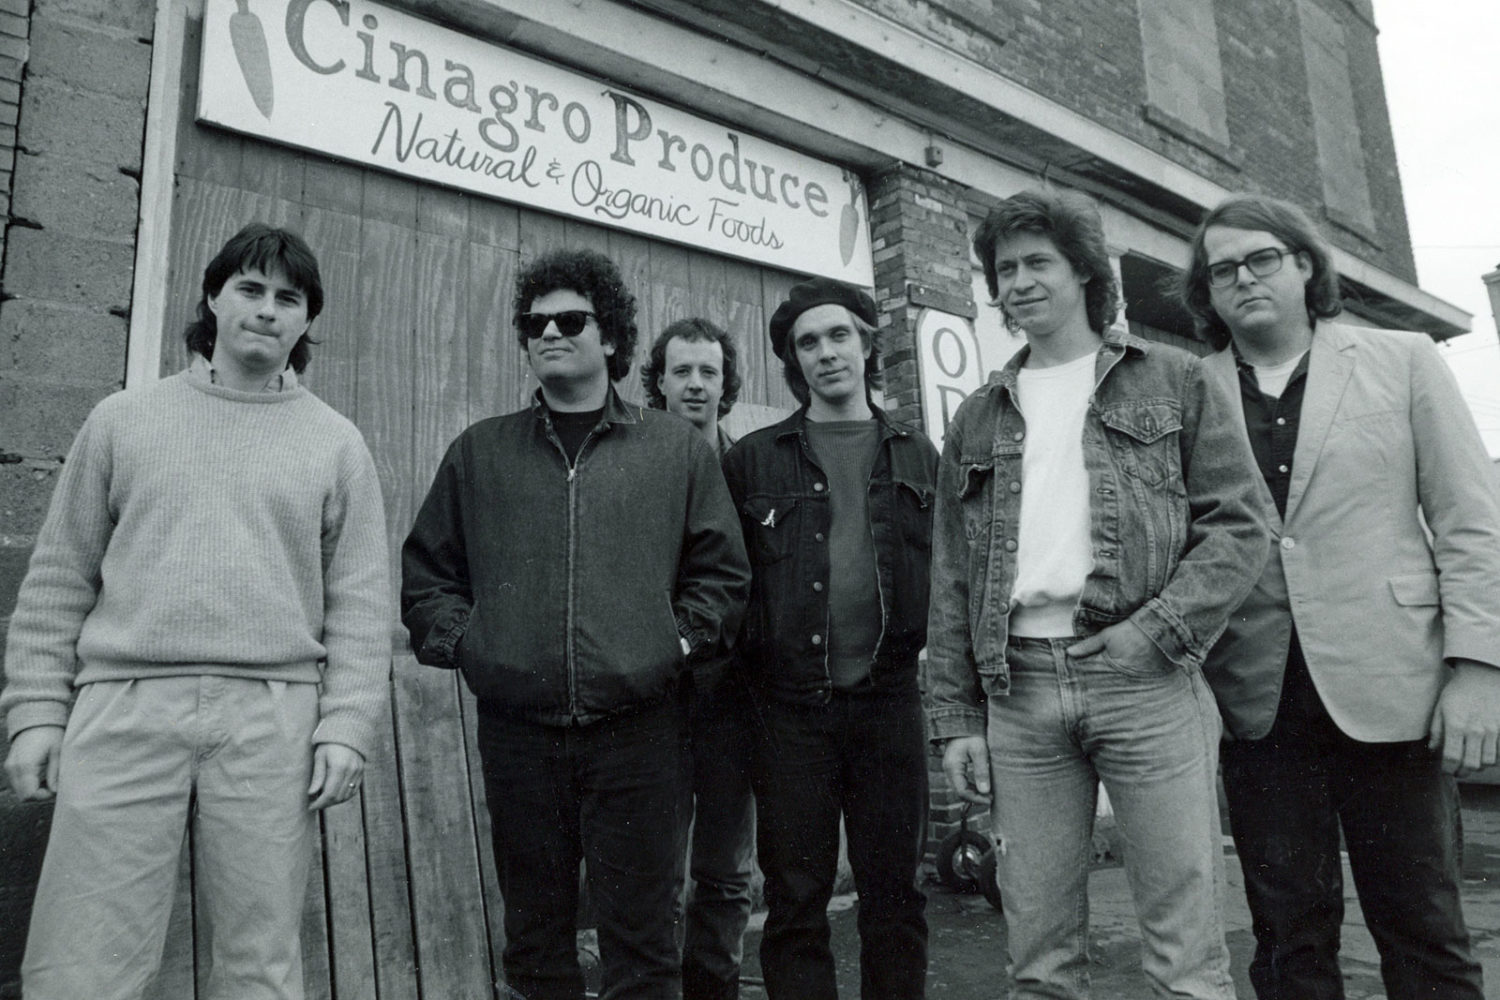 Colorblind James Experience promo photo at Public Market in Rochester, New York. Dave McIntire, Chuck Cuminale, John Ebert, Phil Marshall and Jim McAvaney.